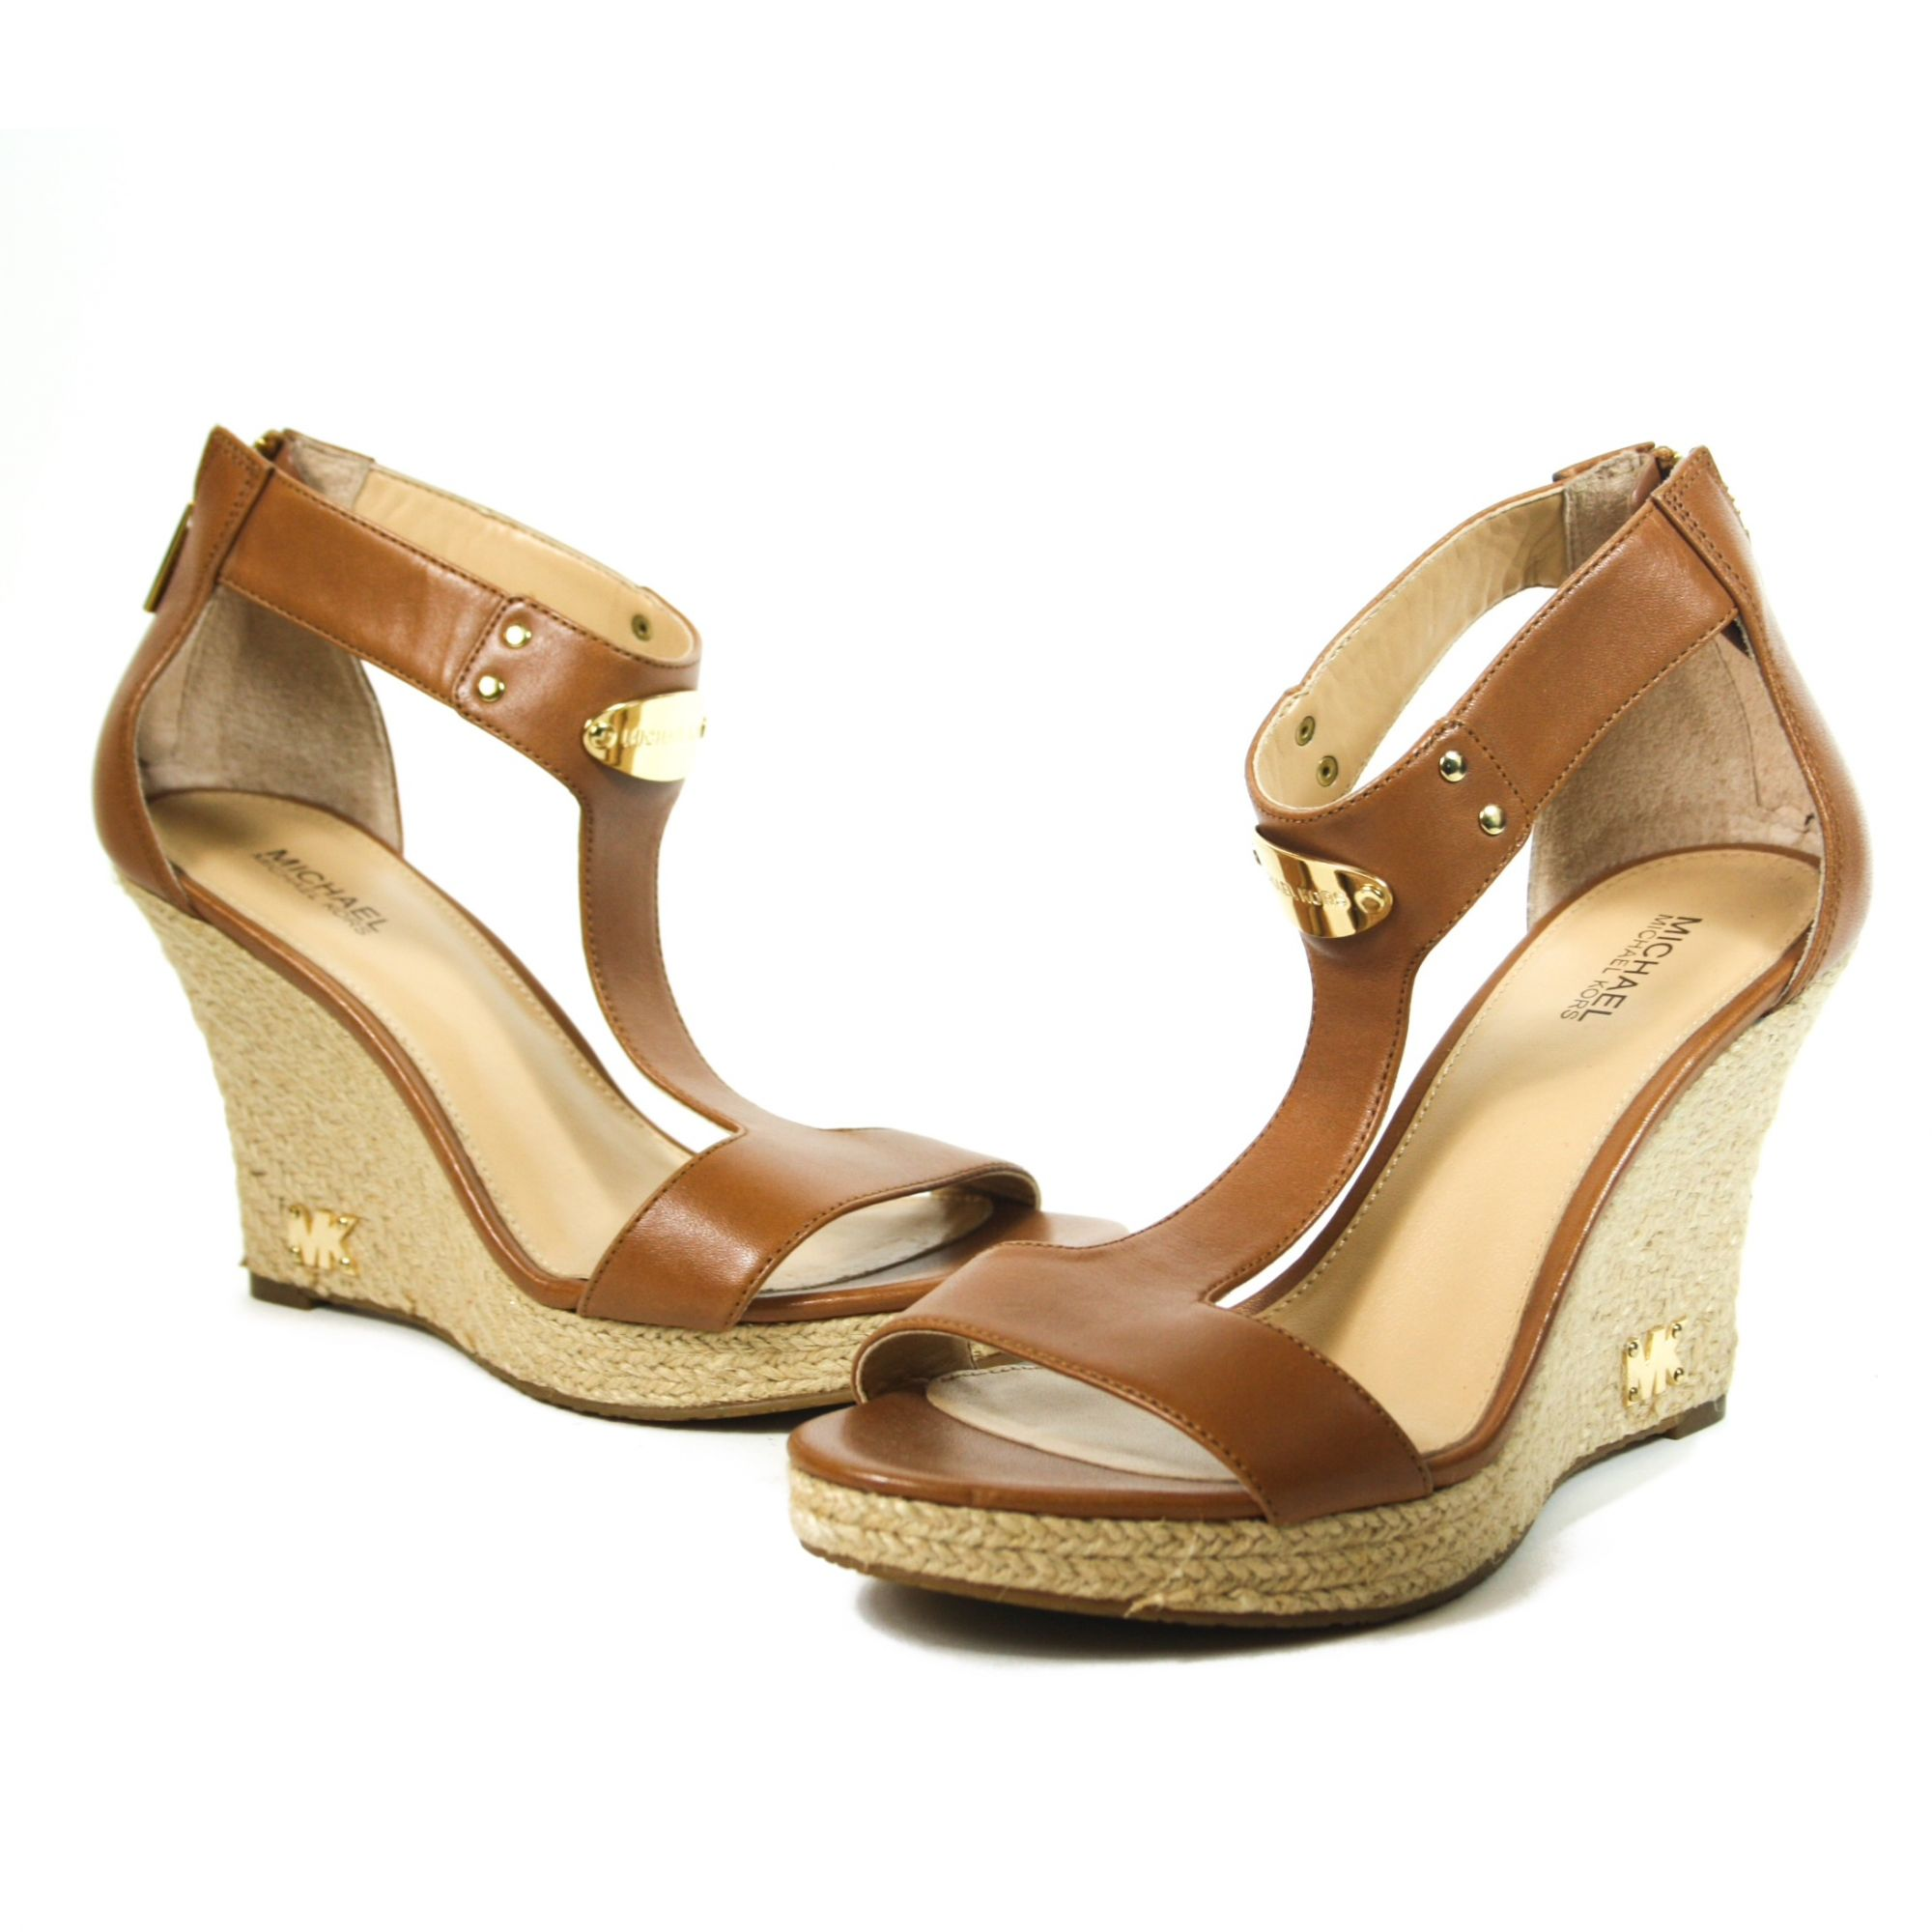 Plate Espadrille Leather Wedge Size: 6.5M